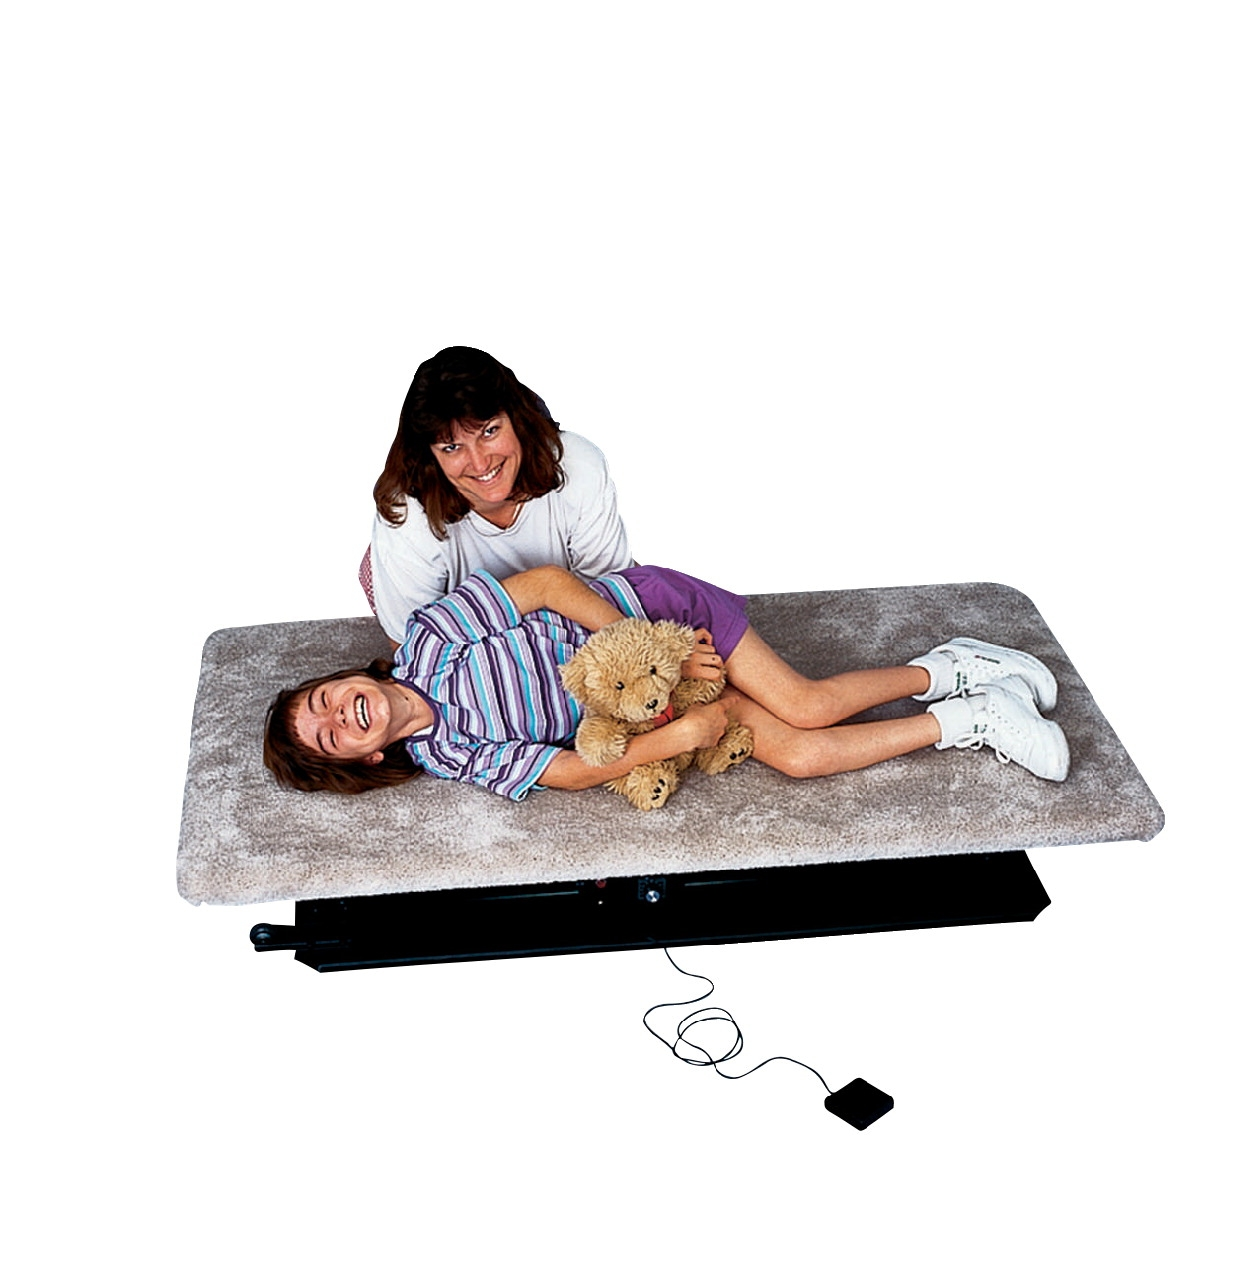 School Specialty Motion Table - 013090 - Special Needs Sensory Processing Multi Sensory 013090